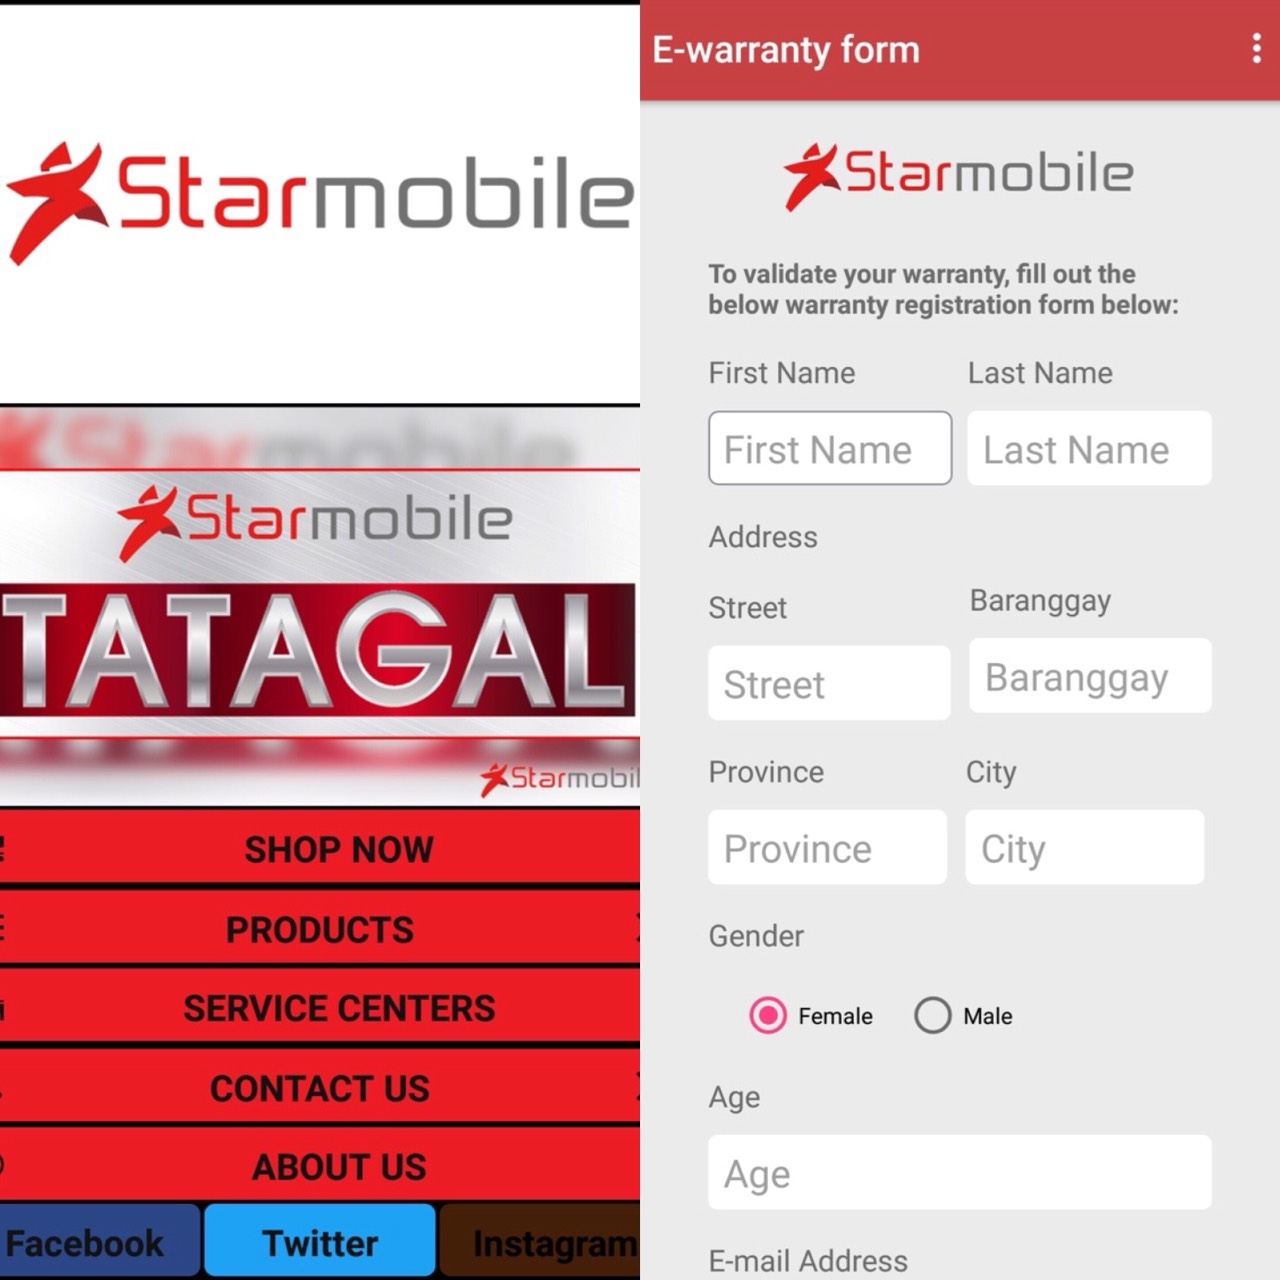 Starmobile introduces aftersales service apps in its smartphones ...